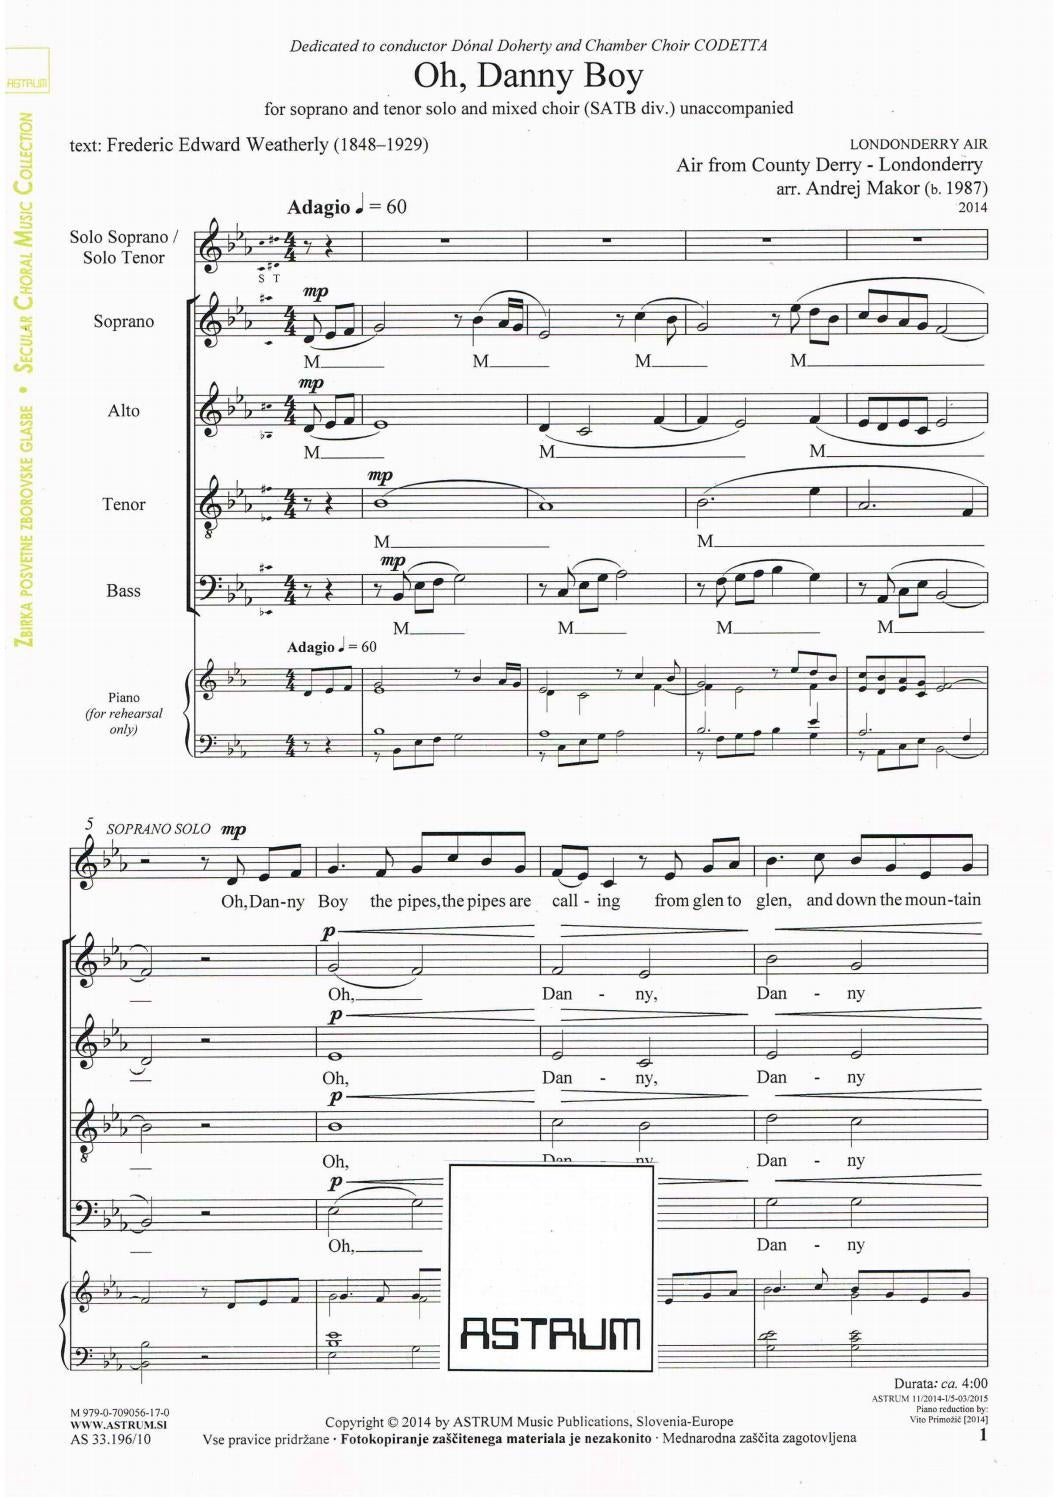 Makor Andrej arr : OH, DANNY BOY for S+T solo and SATB div